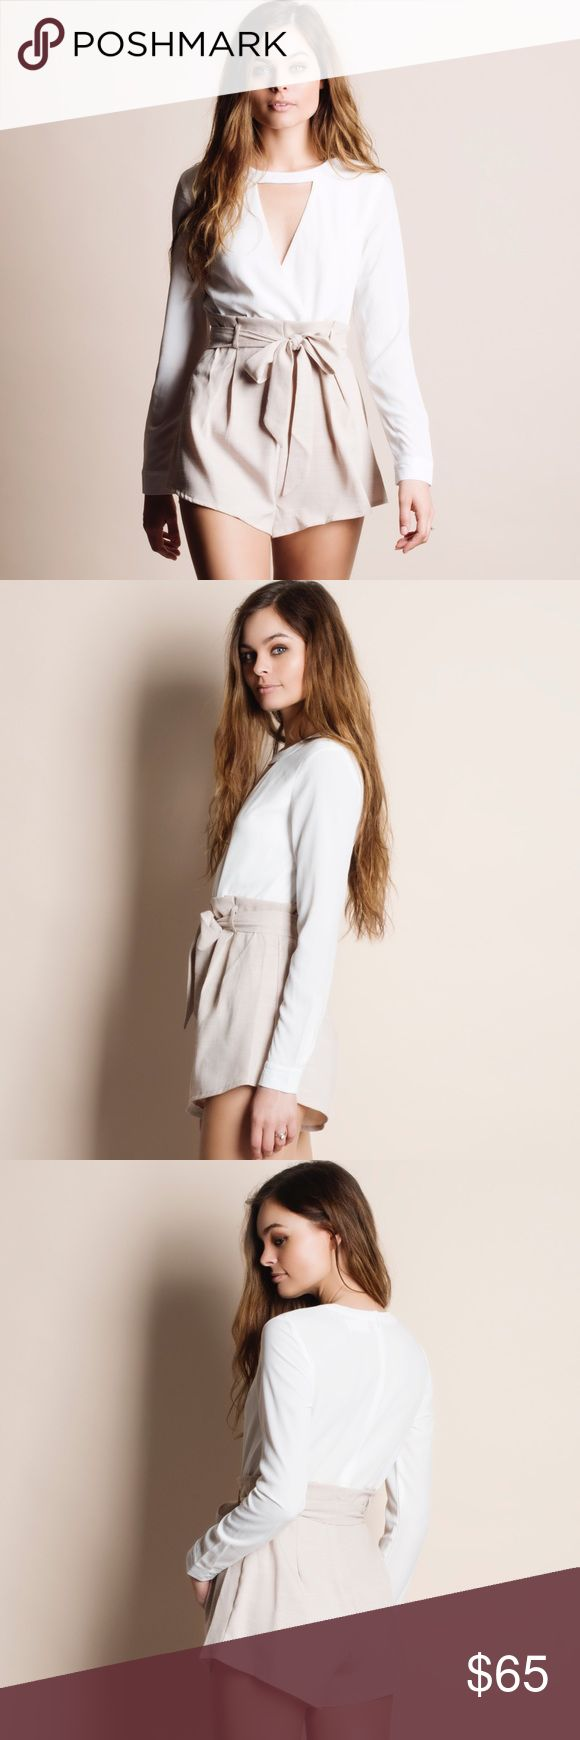 """Two Toned Cut Out Tie Waist Romper Playsuit Beige and white cut out front, tie waist romper. Junior sizing. This is an ACTUAL PIC of the item - all photography done personally by me. Model is 5'9"""", 32""""-24""""-36"""", wearing the size small. NO TRADES DO NOT BOTHER ASKING. Bare Anthology Pants Jumpsuits & Rompers"""